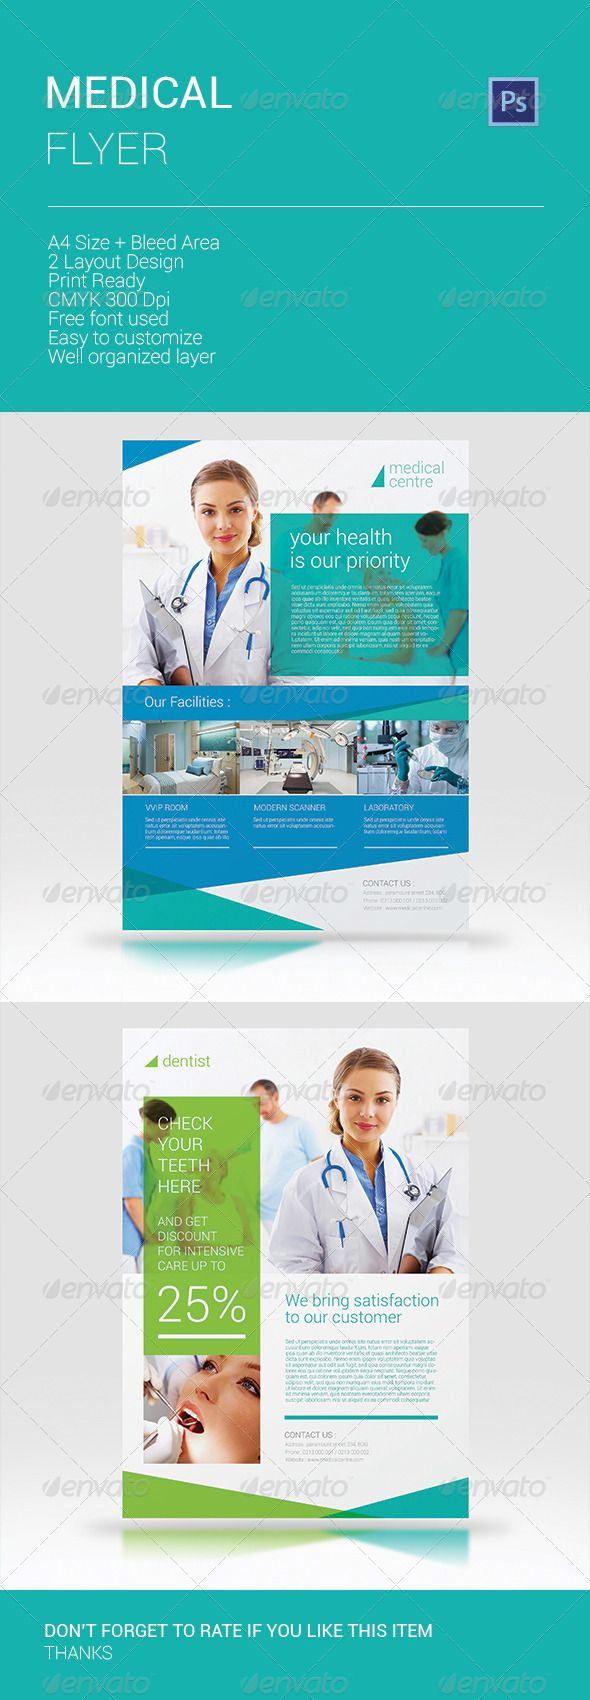 healthcare brochure templates free download - 96 best images about clean print design on pinterest